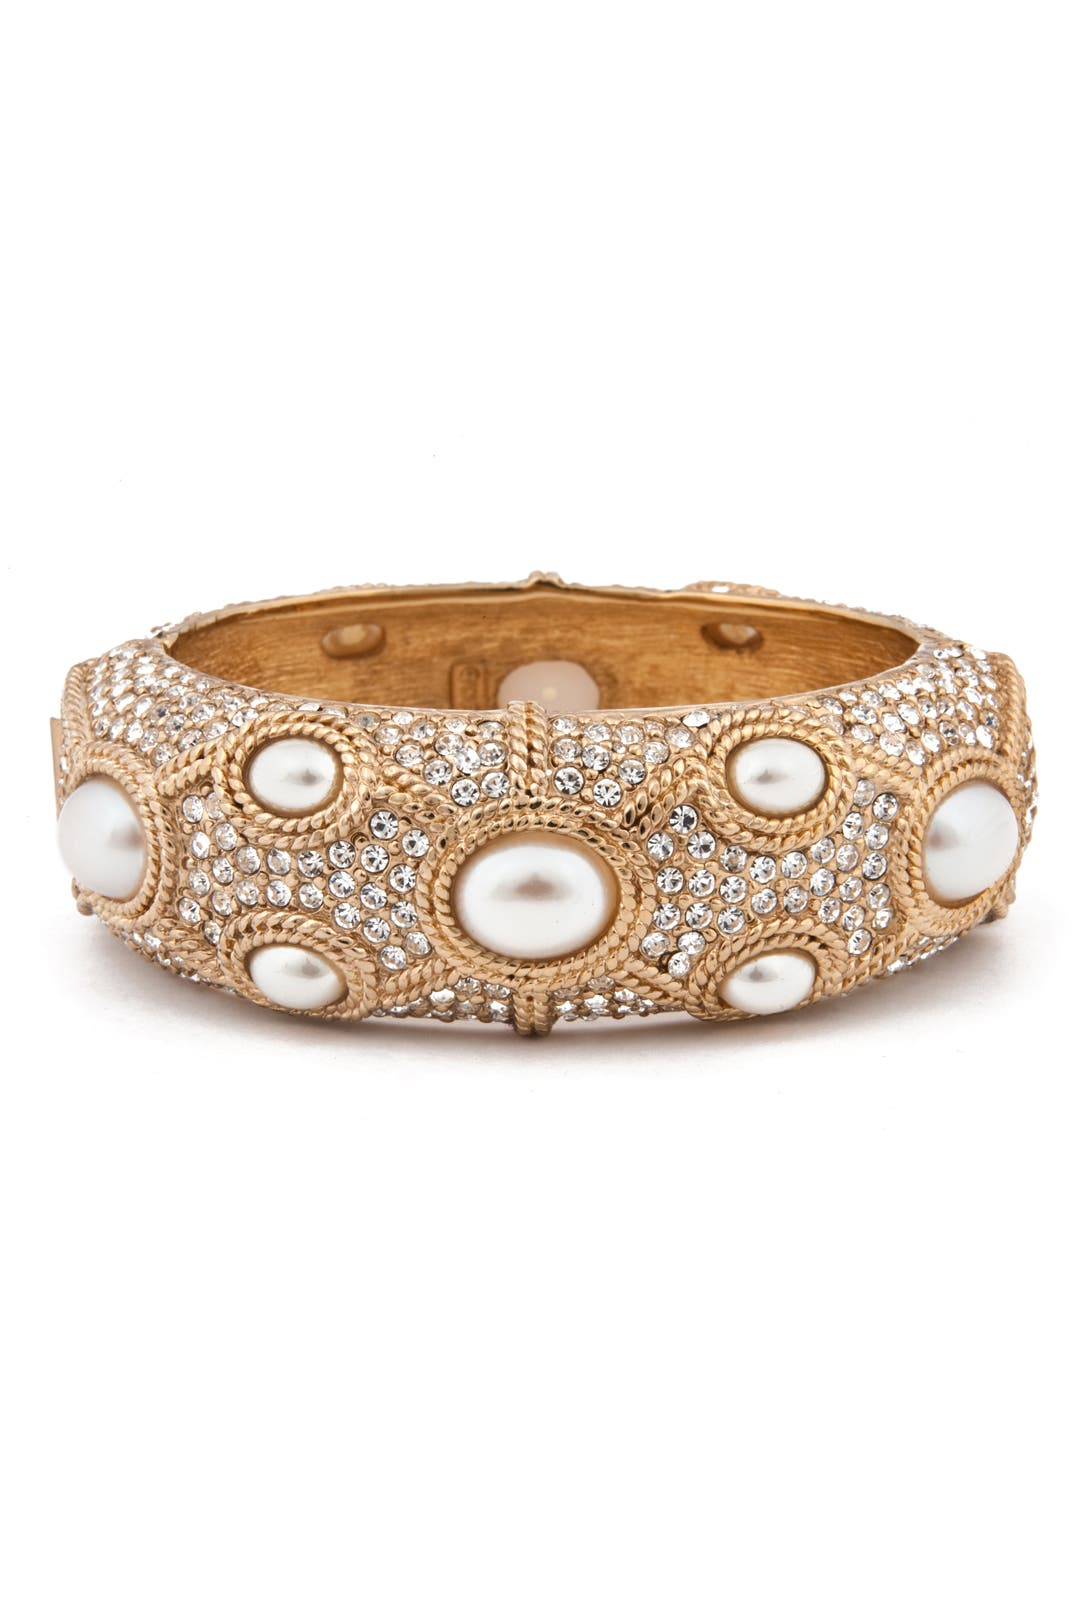 Old Hollywood Glamour Bracelet by Ciner